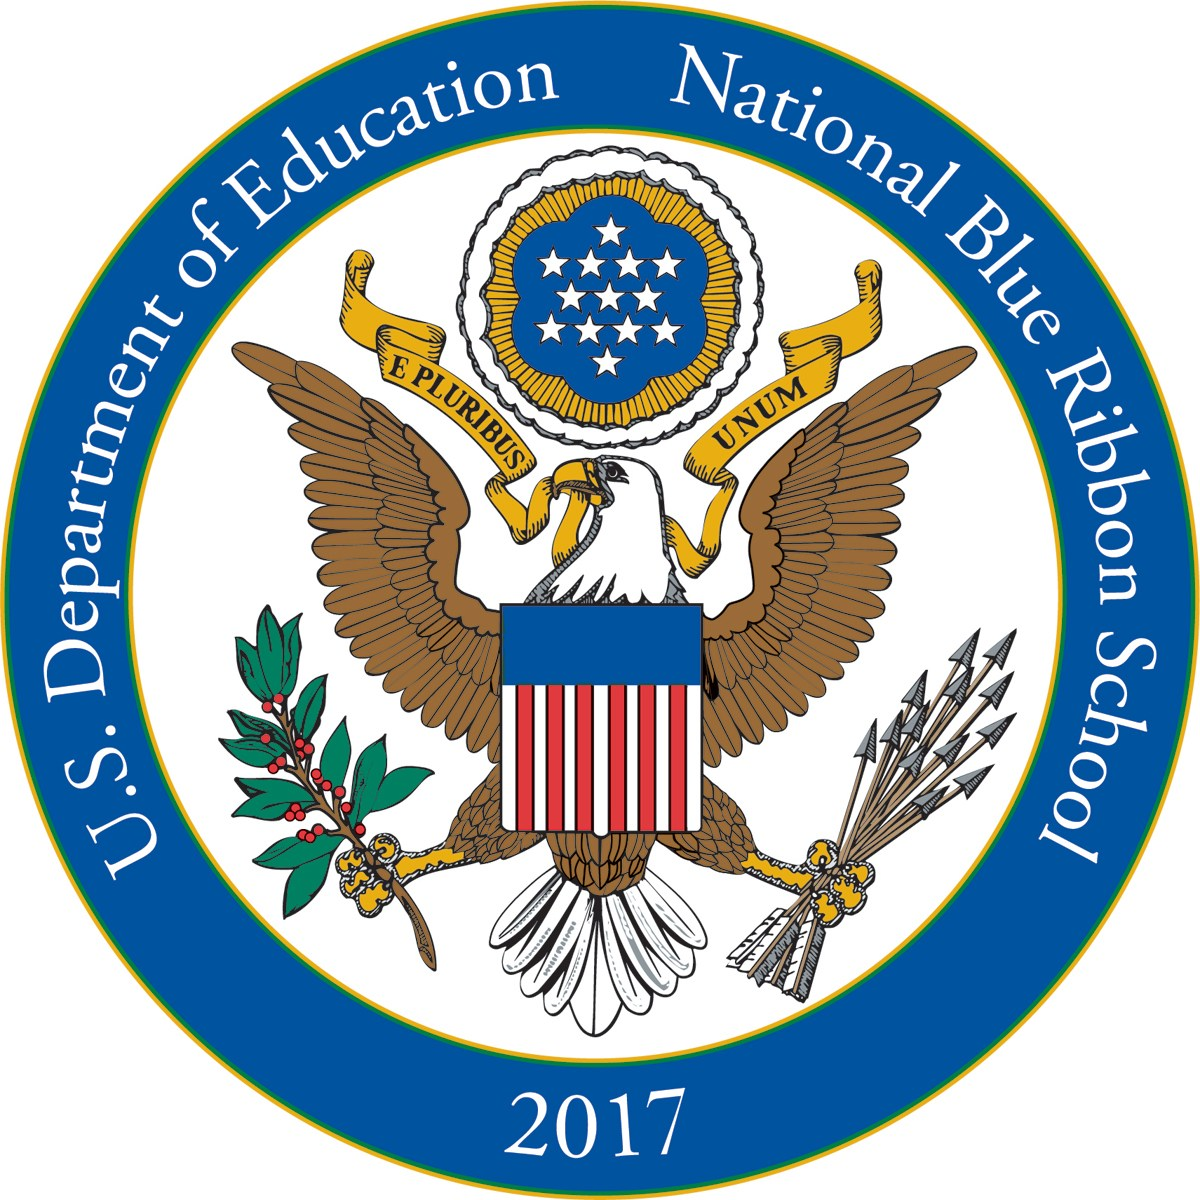 Silver Spur Elementary School, a 2017 National Blue Ribbon School